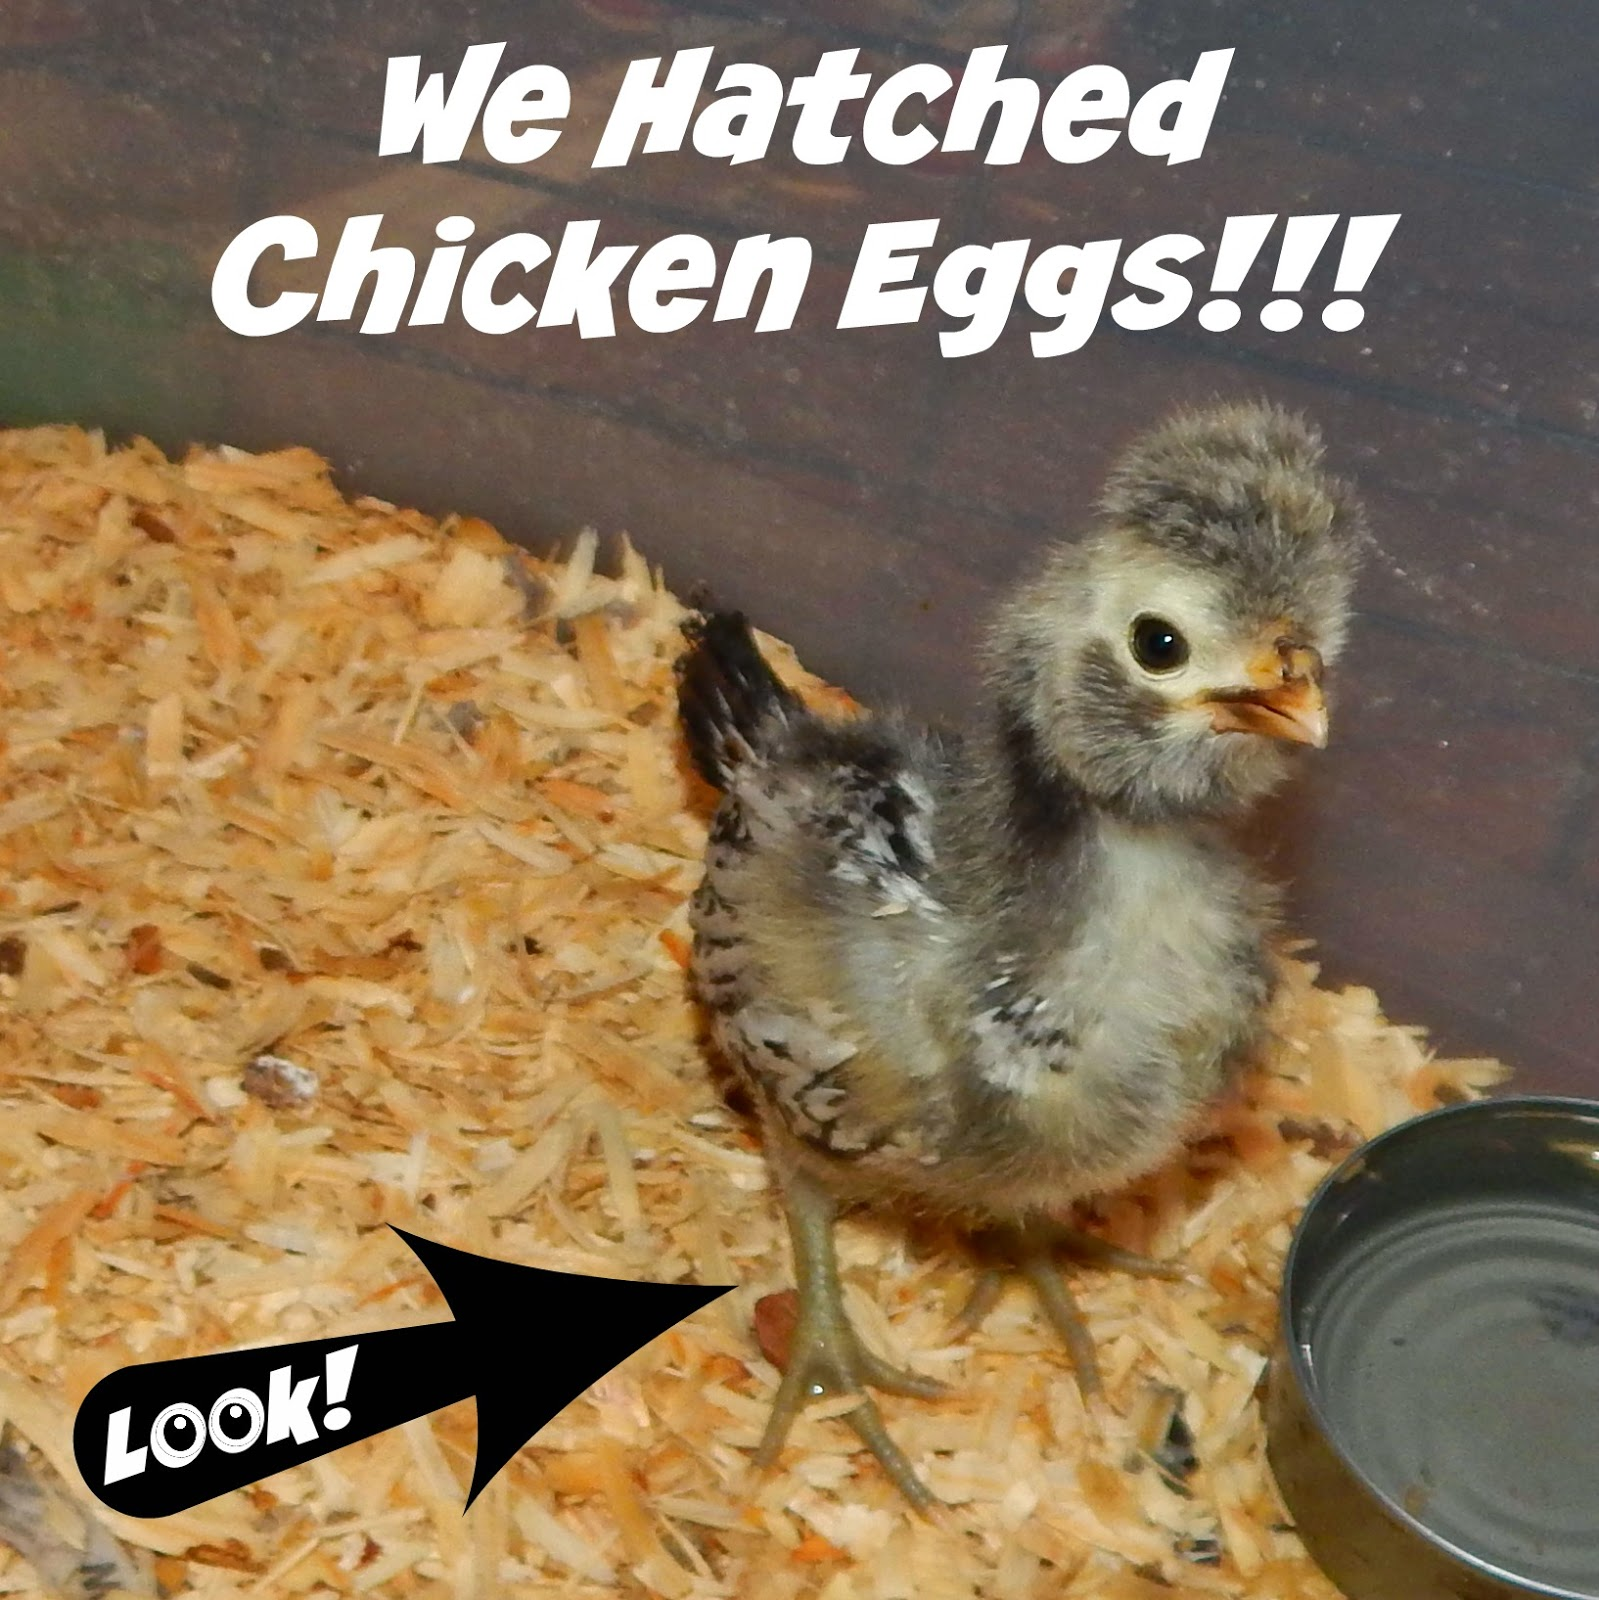 We Hatched Chicken Eggs!!!